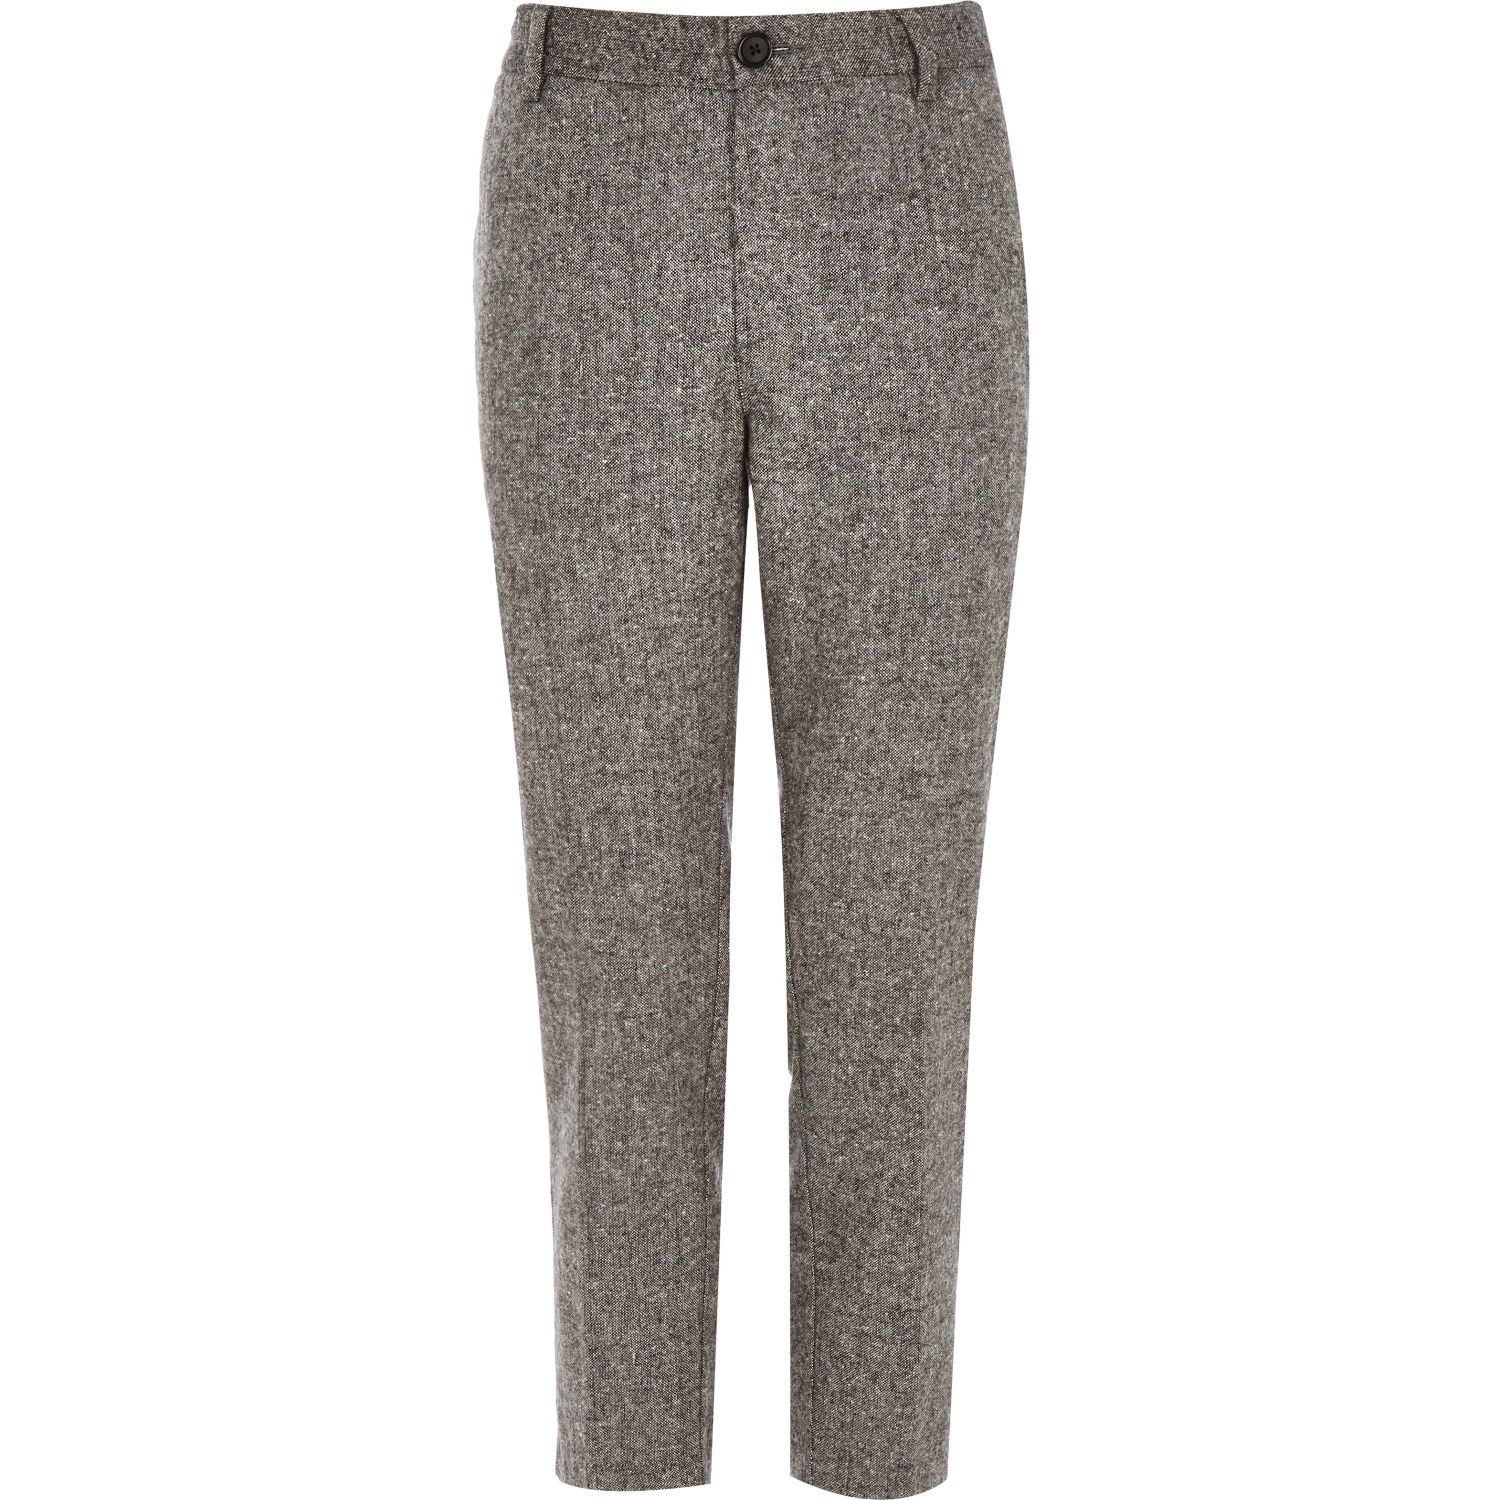 Coco Blanc Boys' Black Wool Pants $ Carbon Soldier Boys' Wedgwood Spotted Saddle Short Sold Out. Carbon Soldier Boys Appaman Boys' Sky Slub Trouser Shorts $ $ Sale. Appaman Boys' Sky Slub Suit Pant $ Sold Out. Sale. Appaman Boys' Khaki Herringbone Suit Pant $